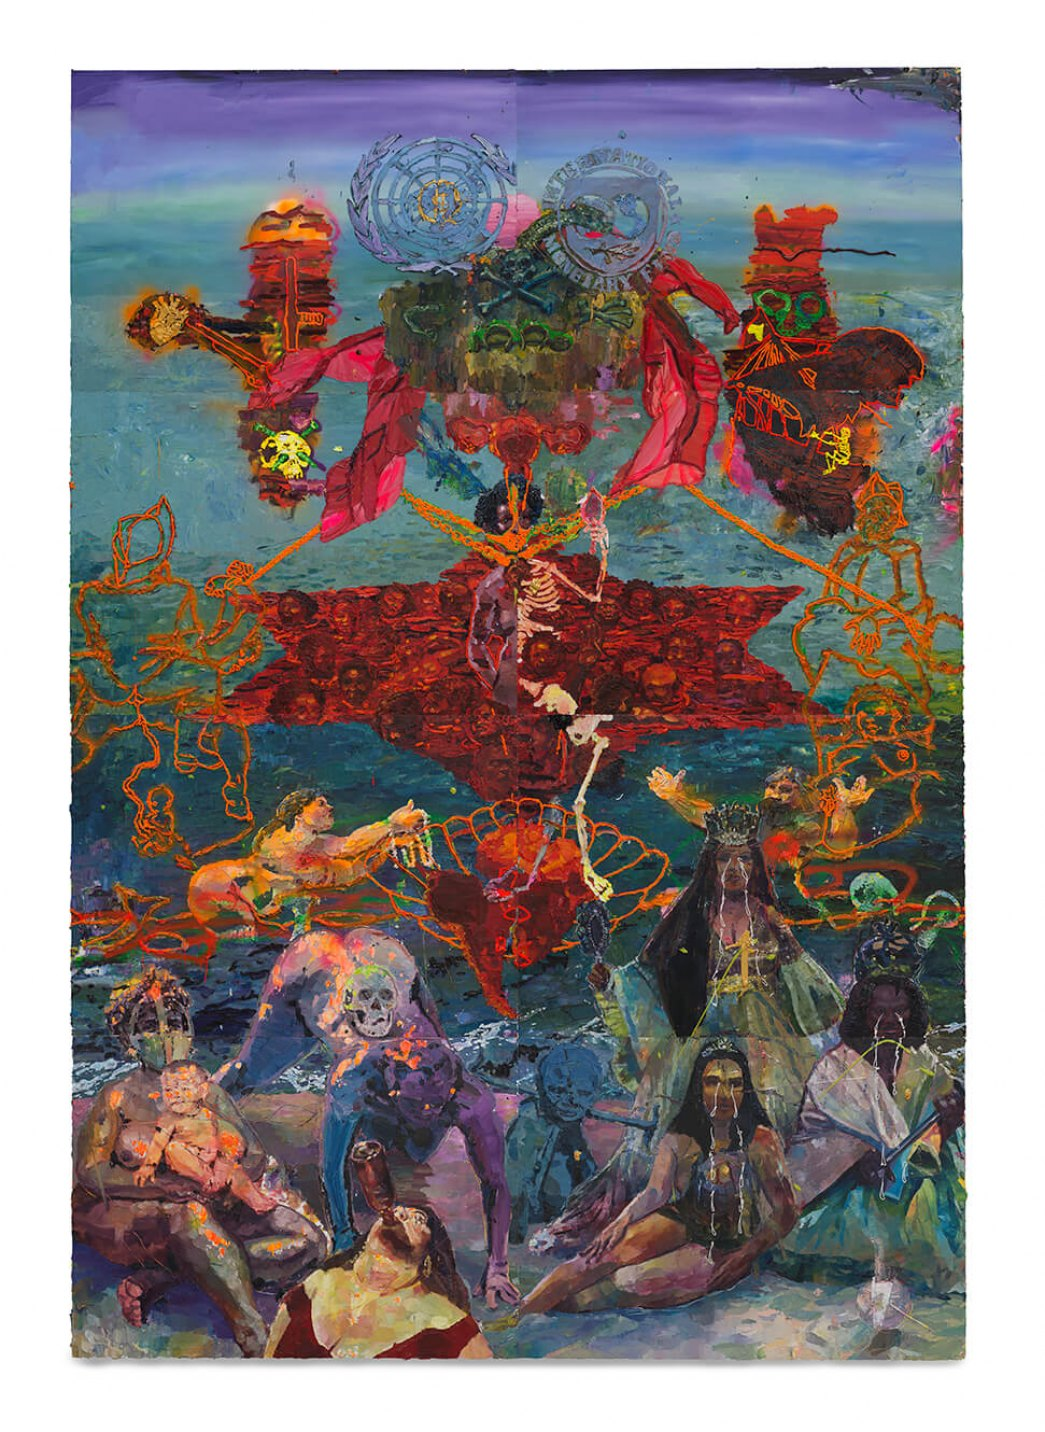 Thiago Martins de Melo, <em>The Azimutal Division of the World and the Birth of the Slave Venus amidst the Wailing of the Ladies of the Atlantic</em>, 2013, oil on canvas, 520 × 360 cm - Mendes Wood DM